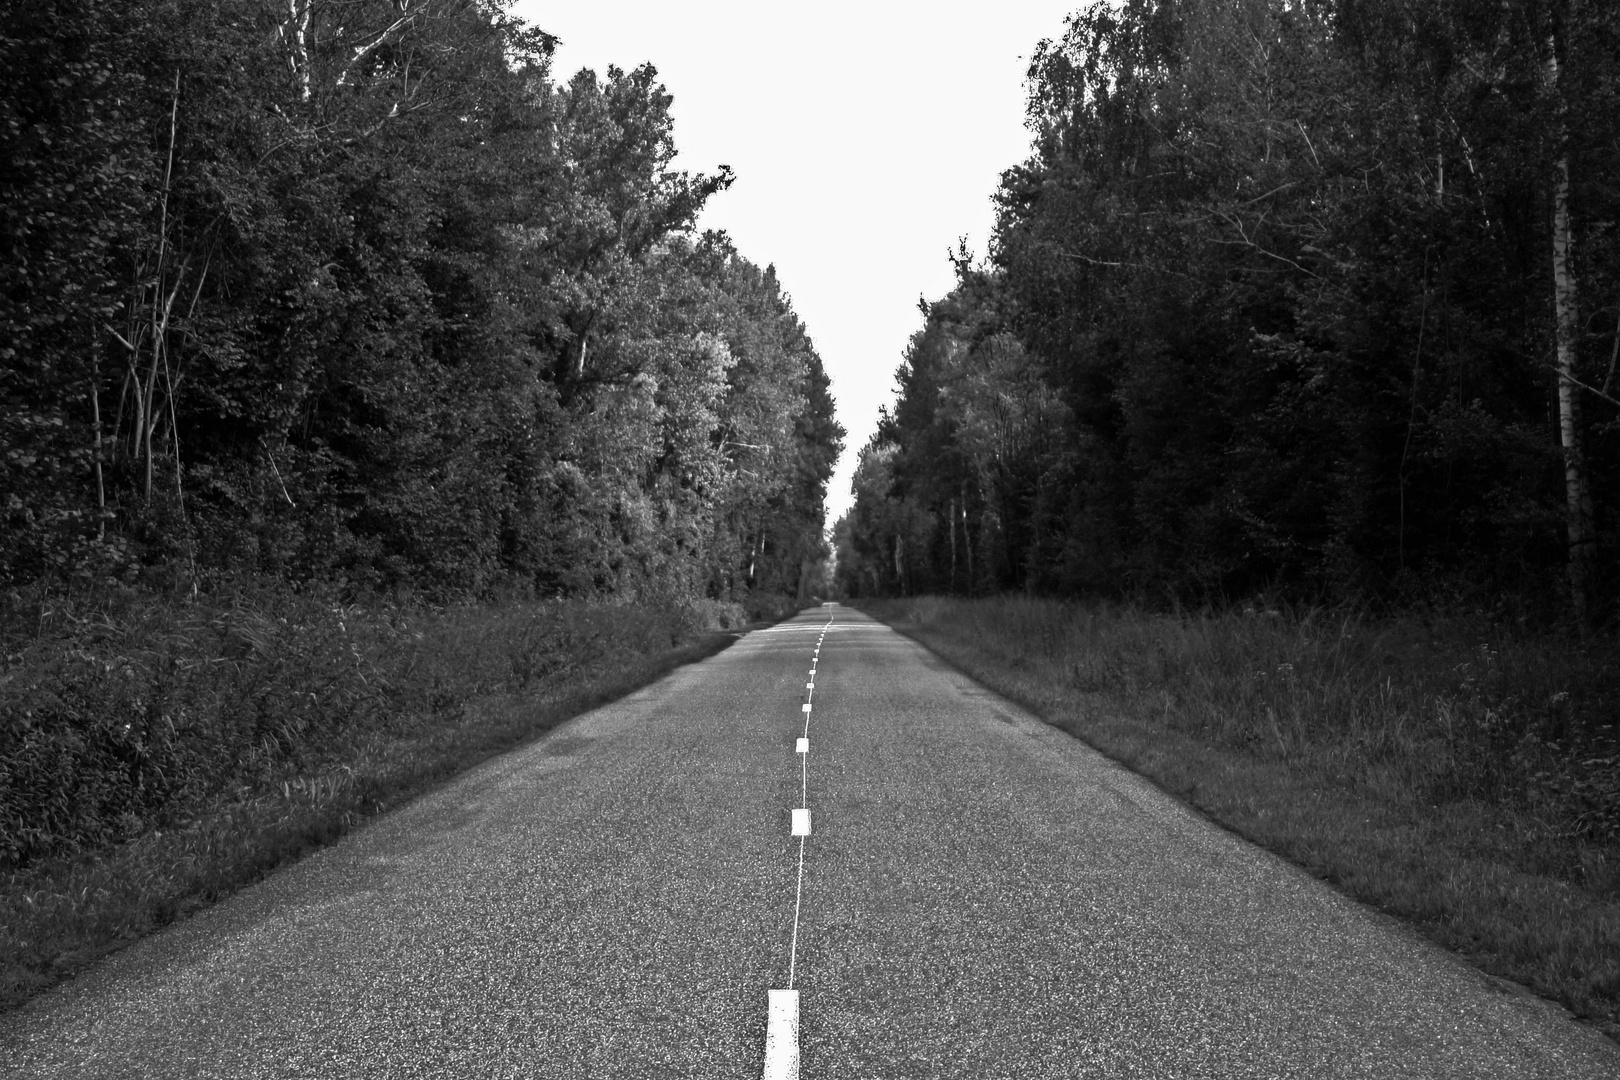 A long lonely road